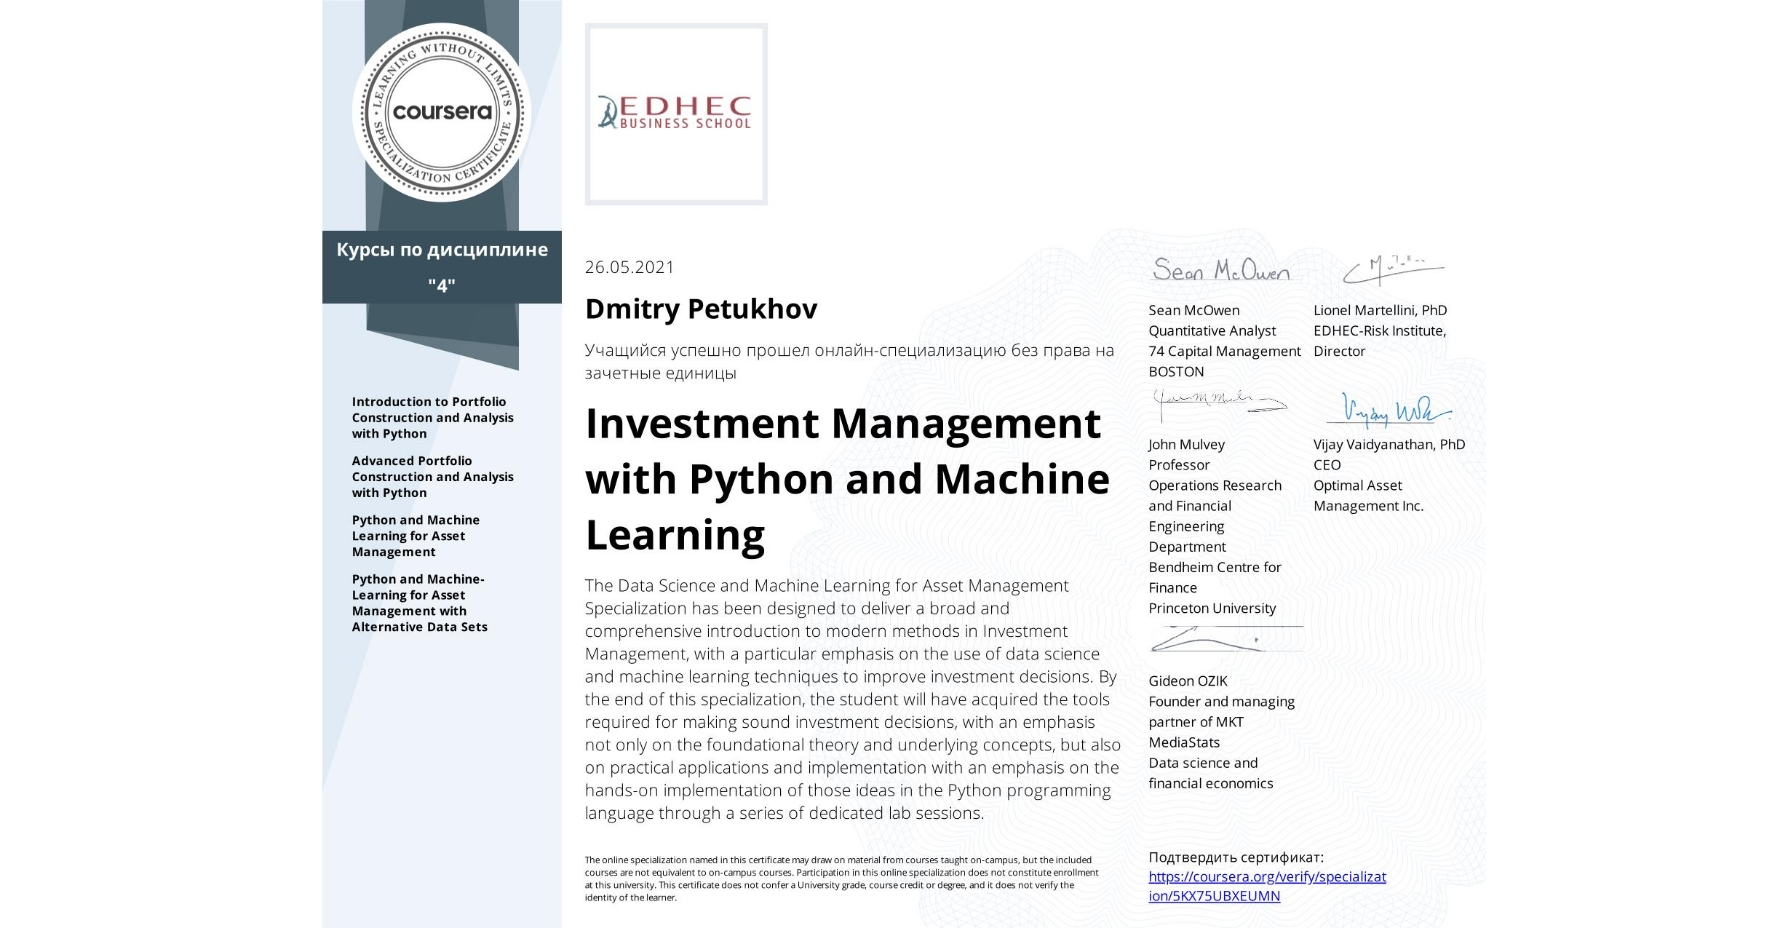 View certificate for Dmitry Petukhov, Investment Management with Python and Machine Learning, offered through Coursera. The Data Science and Machine Learning for Asset Management Specialization has been designed to deliver a broad and comprehensive introduction to modern methods in Investment Management, with a particular emphasis on the use of data science and machine learning techniques to improve investment decisions. By the end of this specialization, the student will have acquired the tools required for making sound investment decisions, with an emphasis not only on the foundational theory and underlying concepts, but also on practical applications and implementation with an emphasis on the hands-on implementation of those ideas in the Python programming language through a series of dedicated lab sessions.